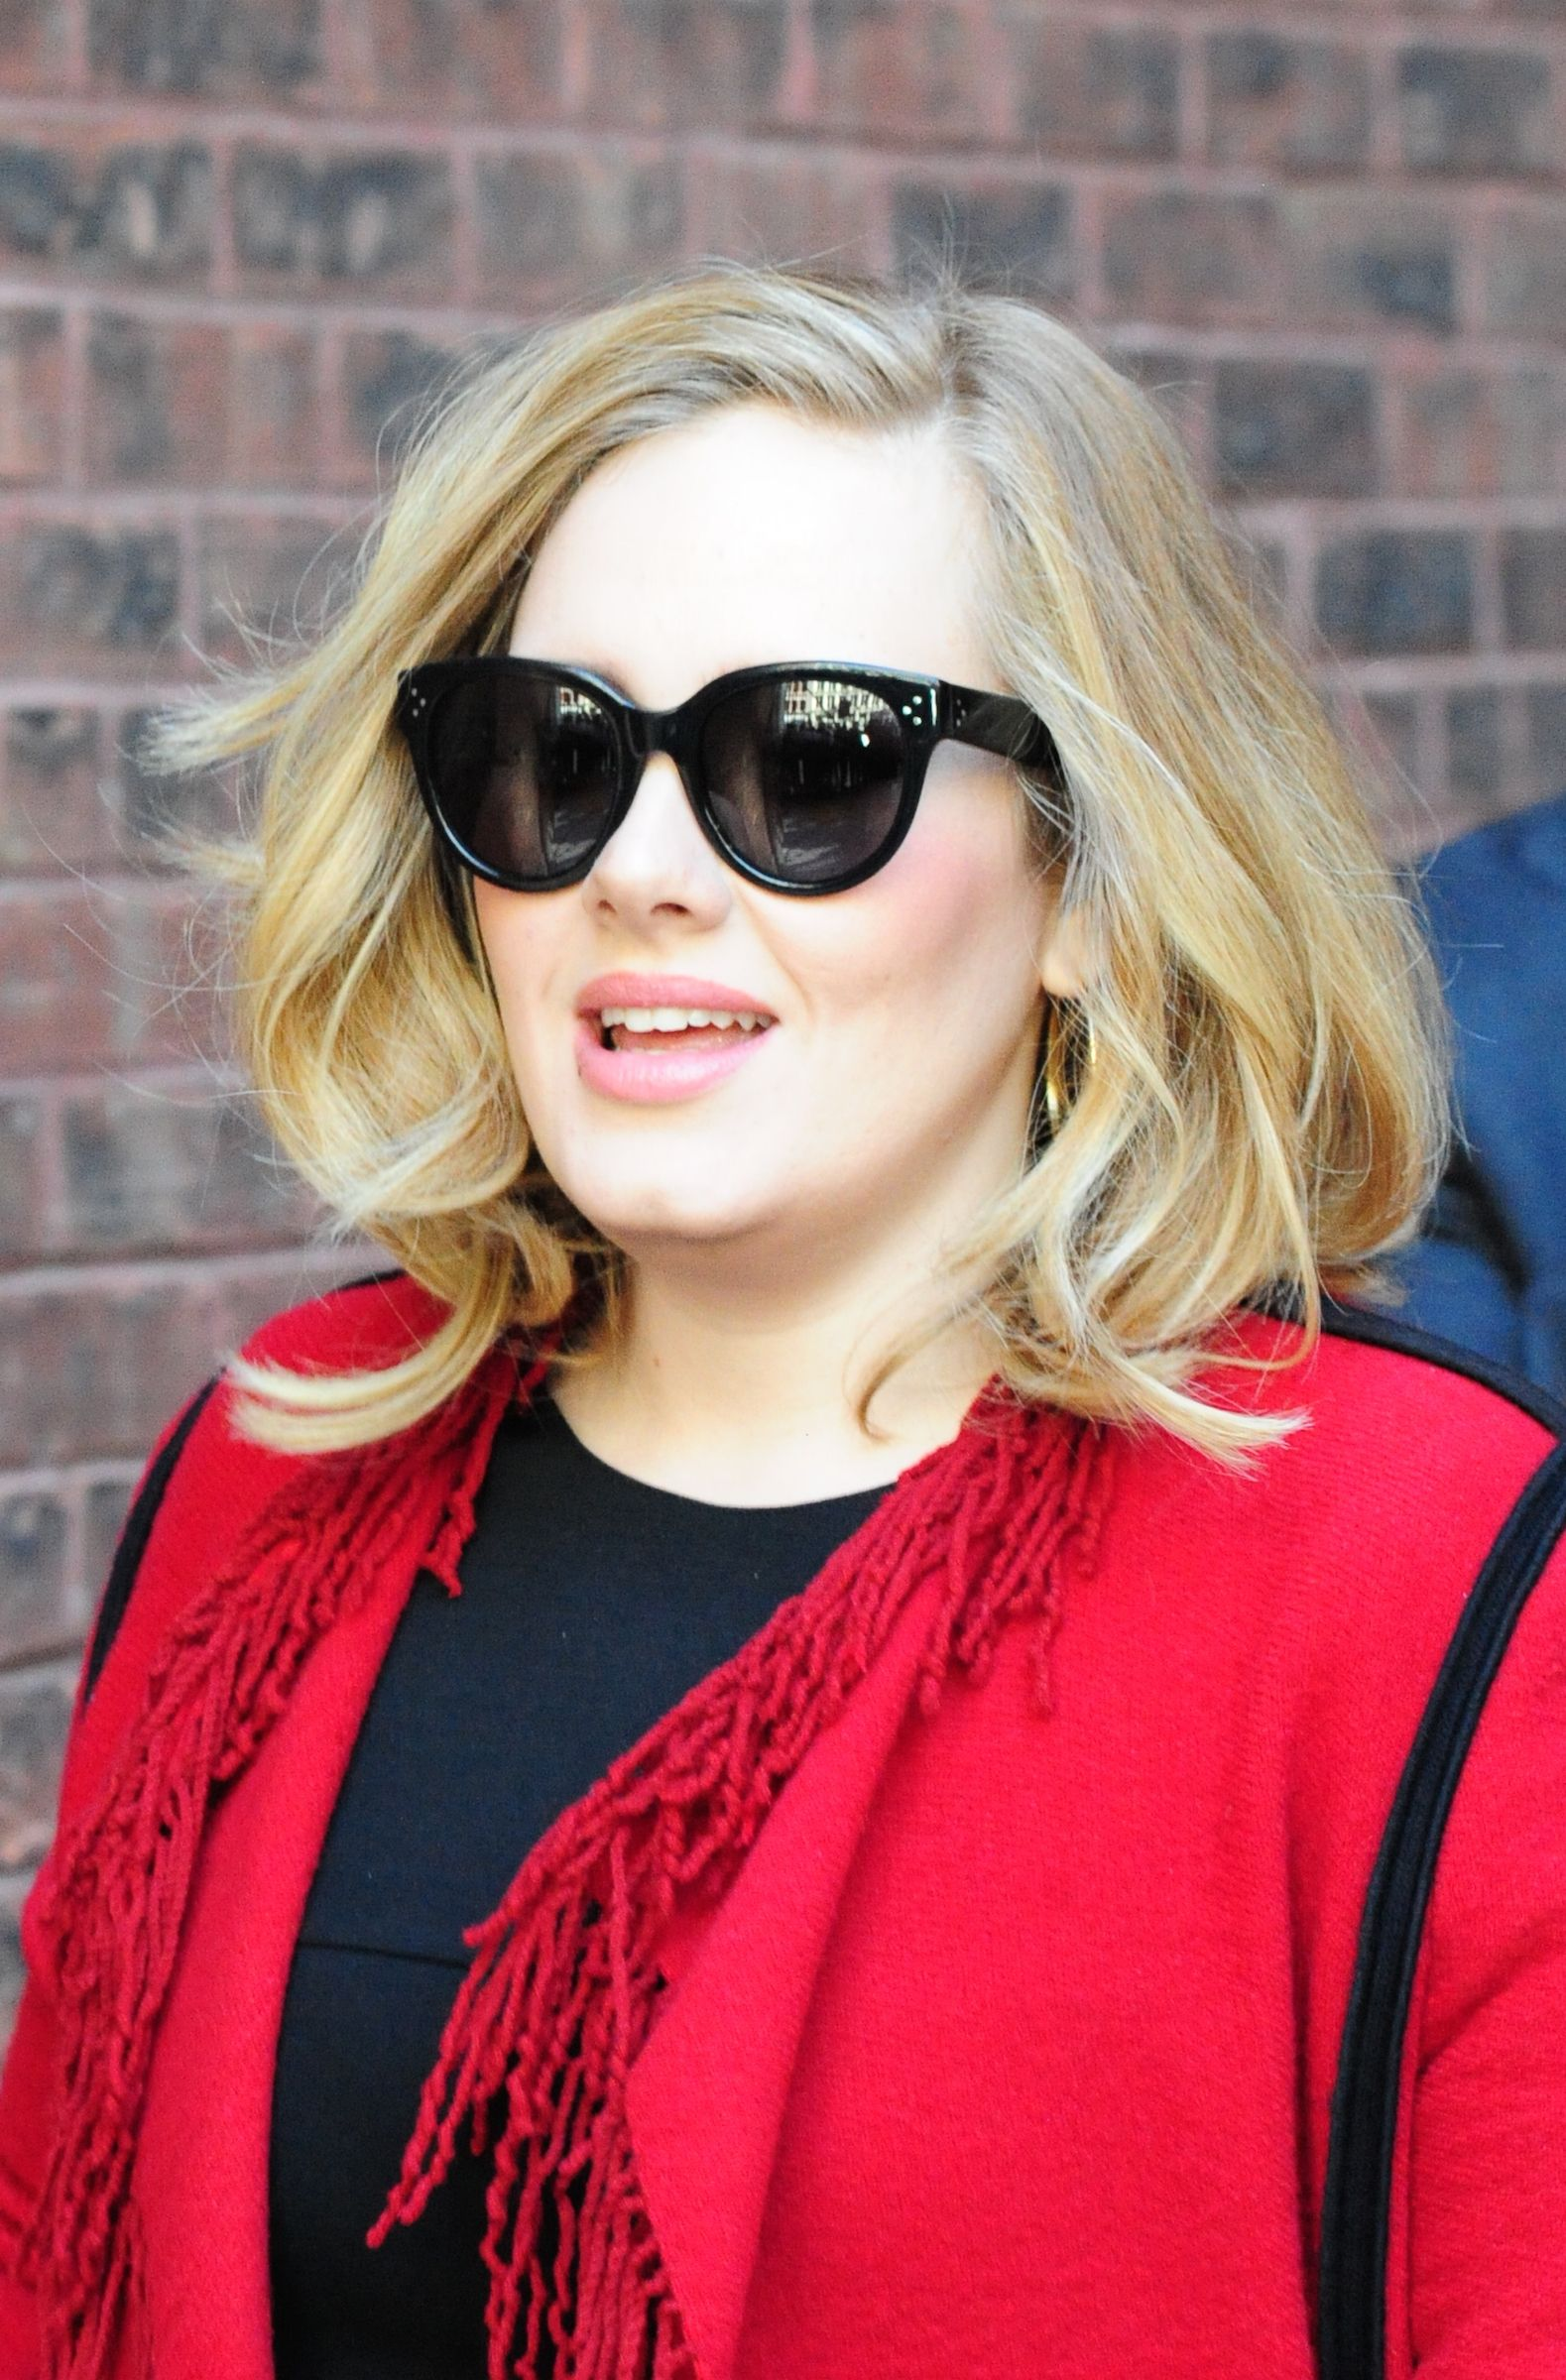 New Hair Adele Hair Adele Short Hair Adele Haircut